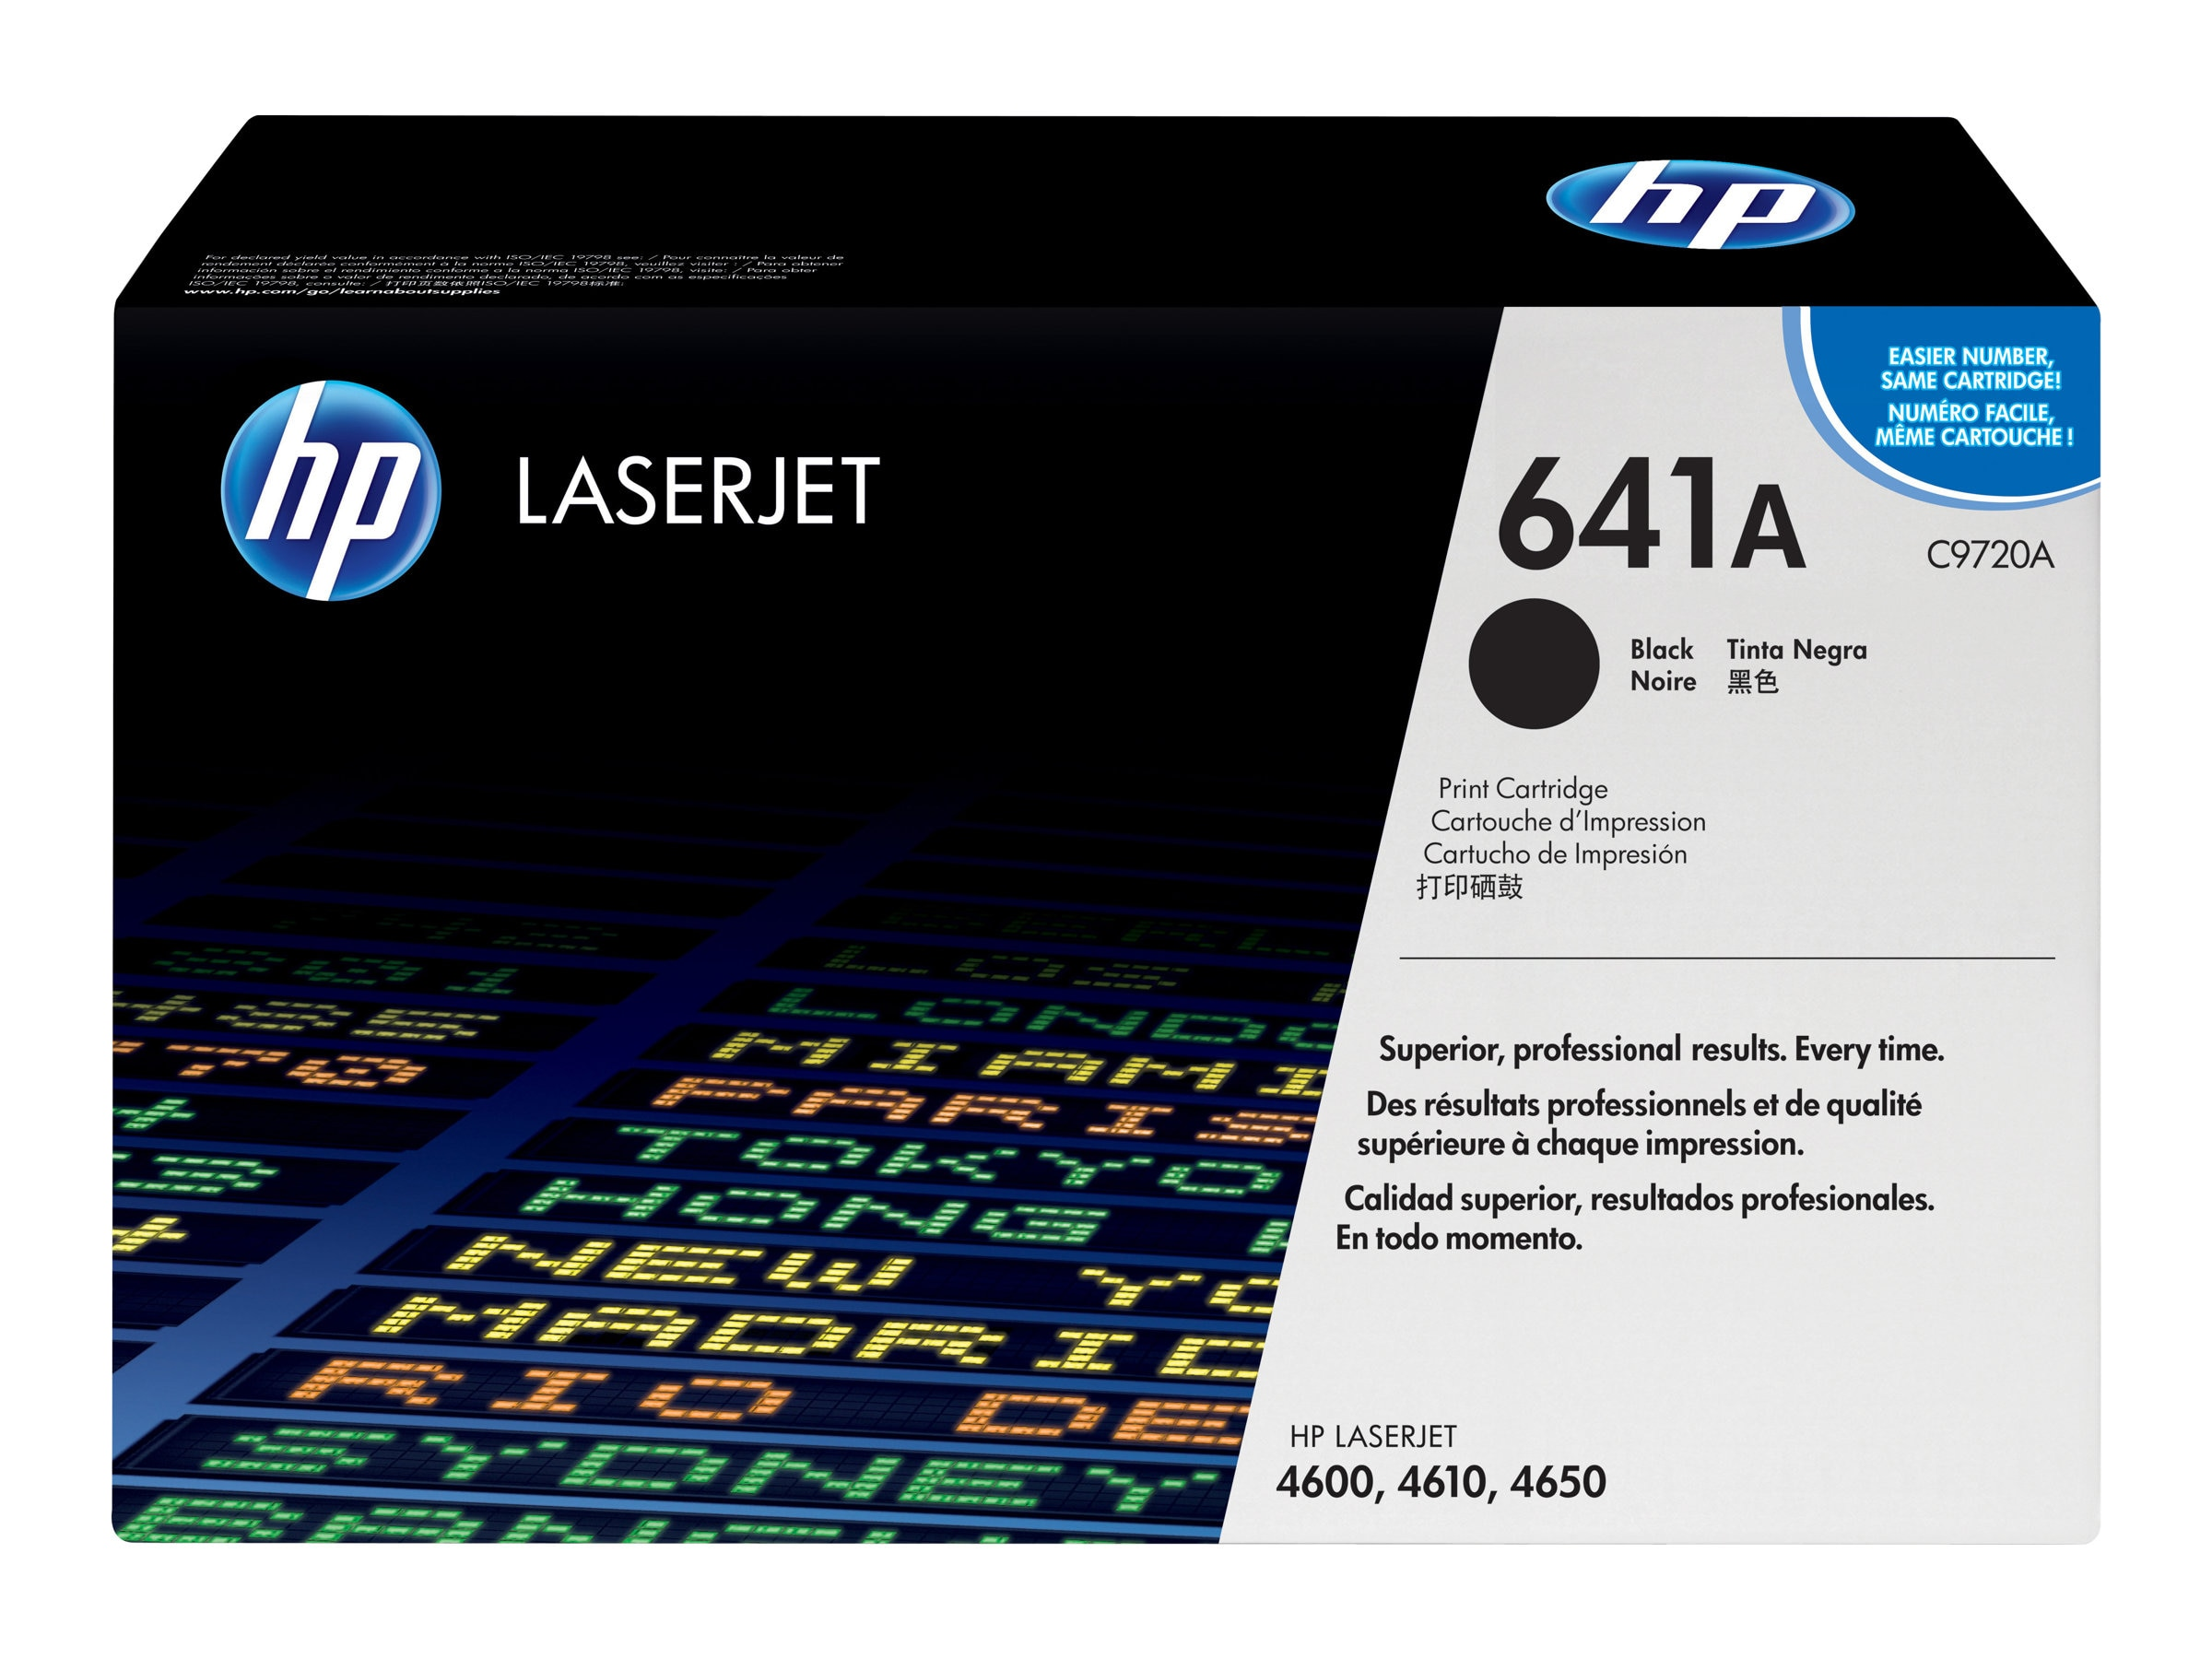 HP 641A (C9720A) Black Original LaserJet Toner Cartridge for HP LaserJet 4600 & 4650 Series